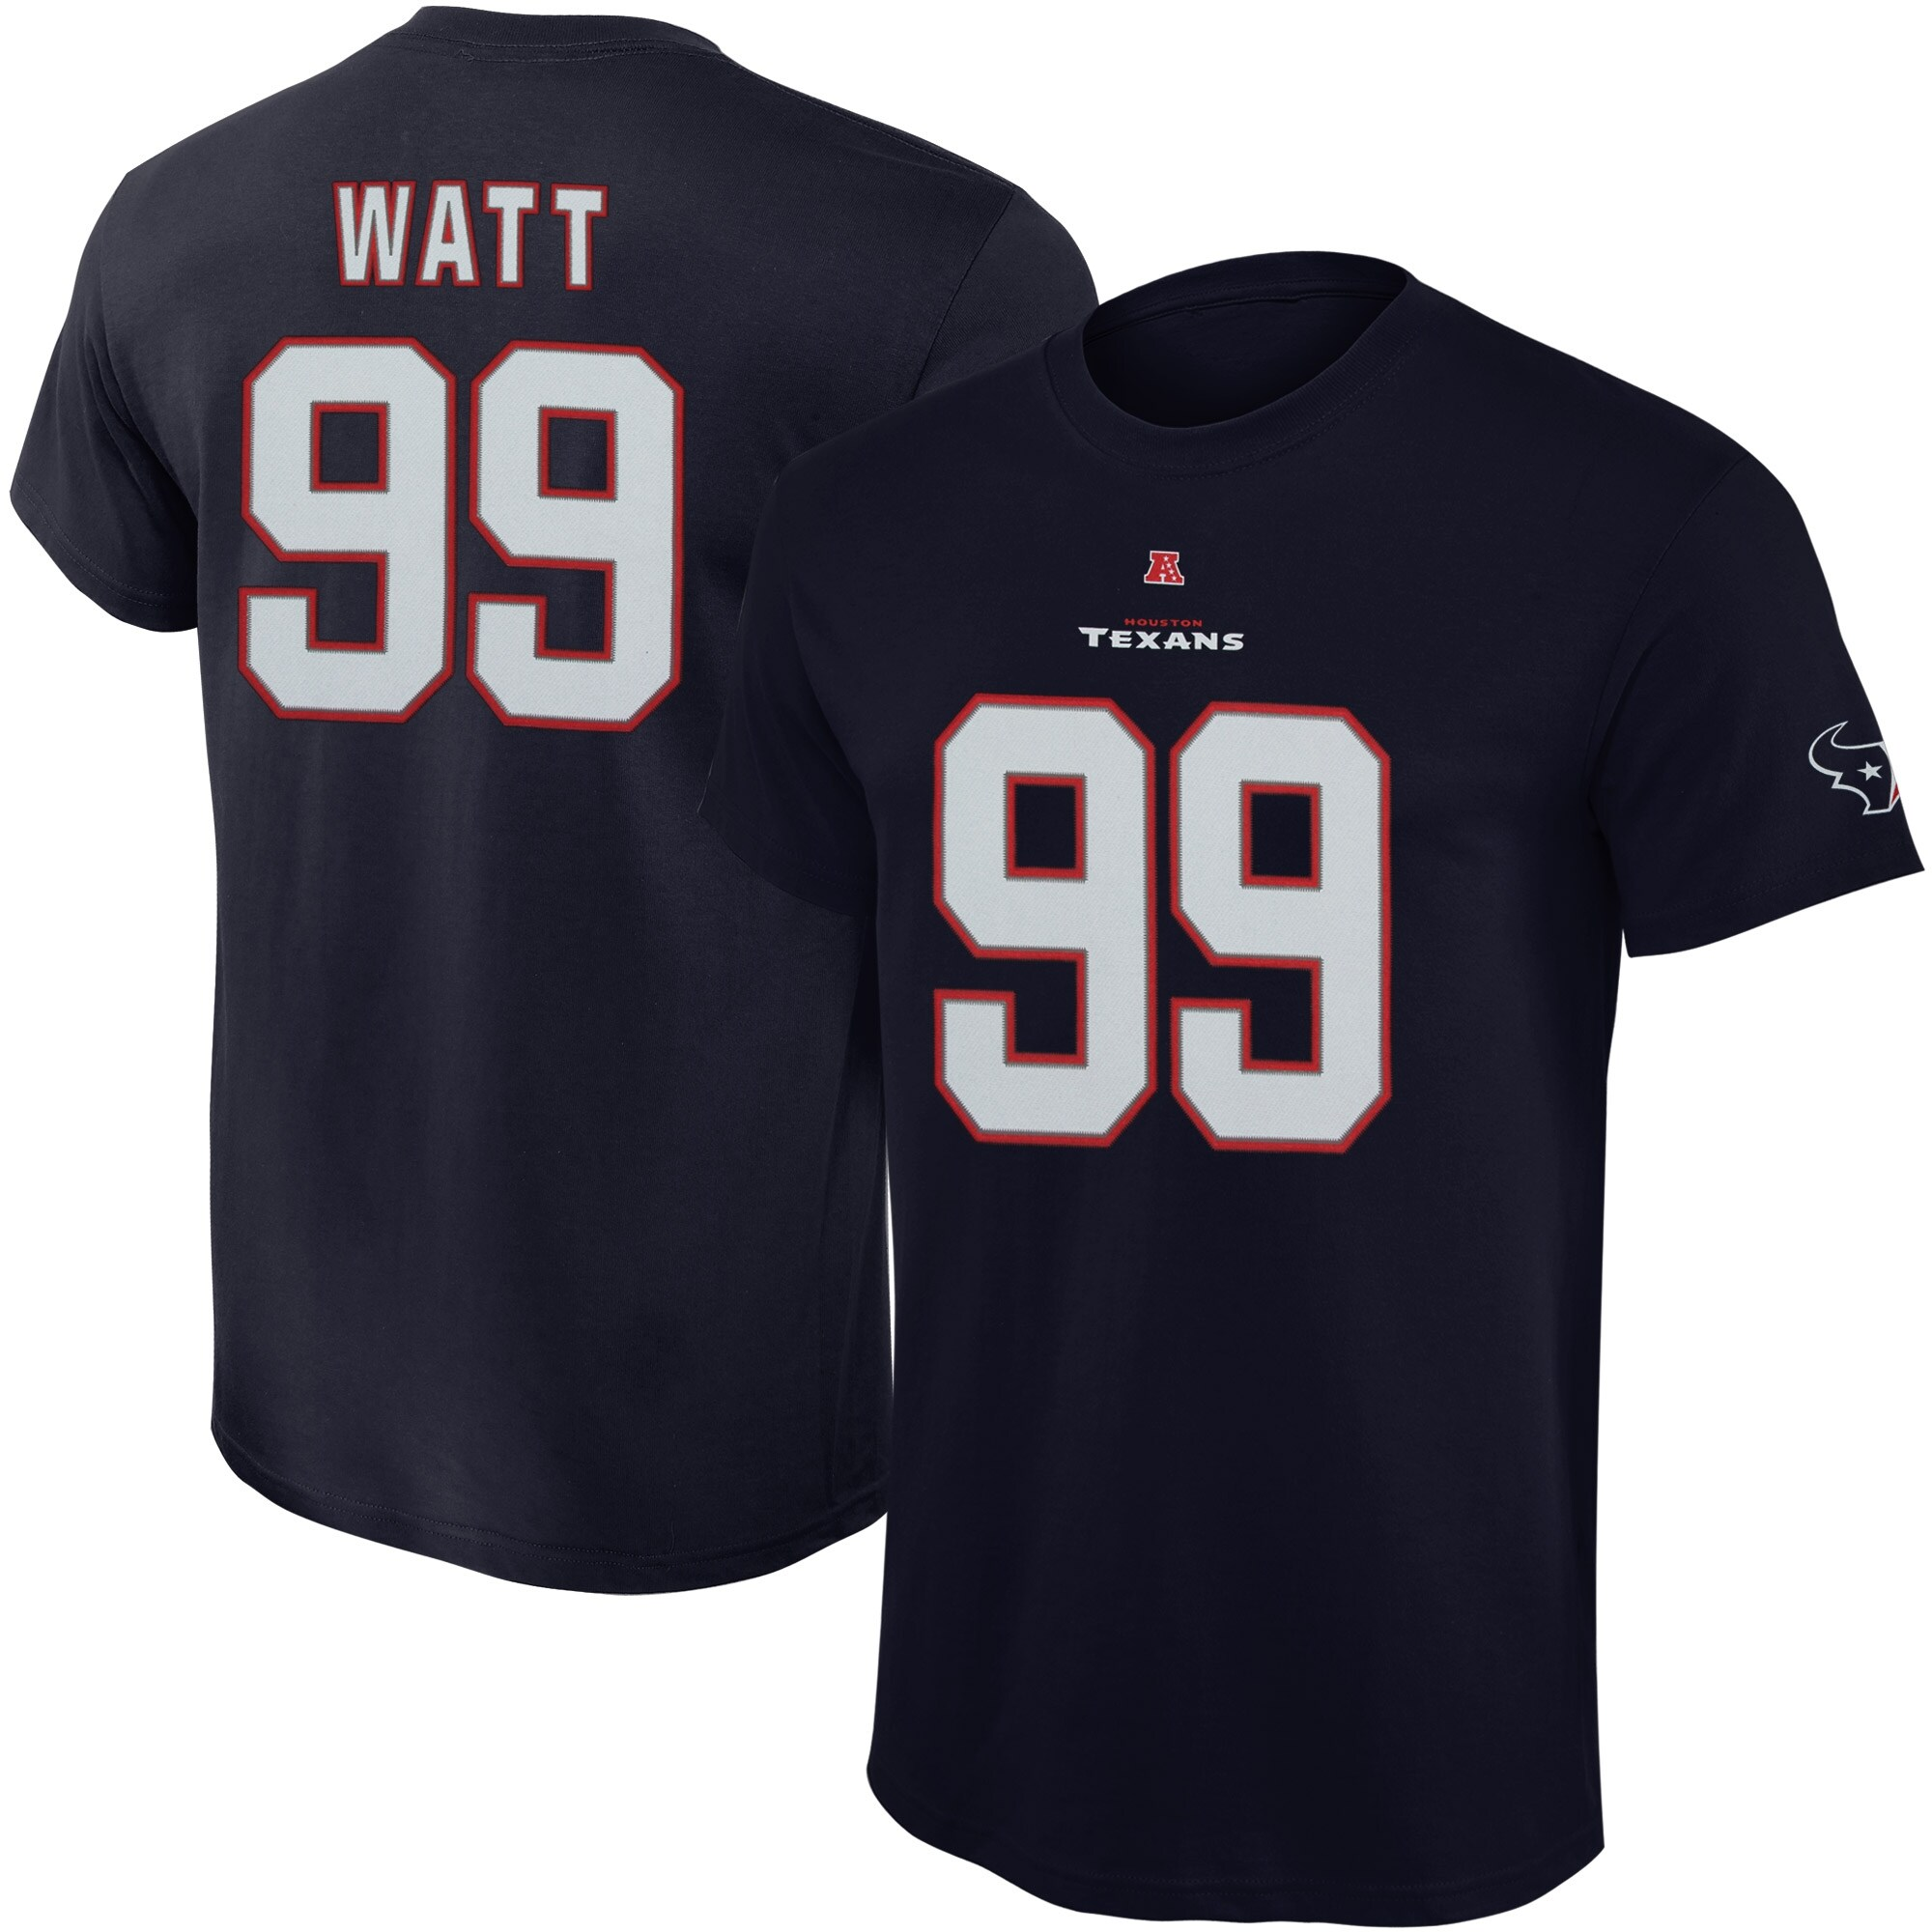 JJ Watt Houston Texans Majestic Big & Tall Eligible Receiver Name and Number T-Shirt - Navy